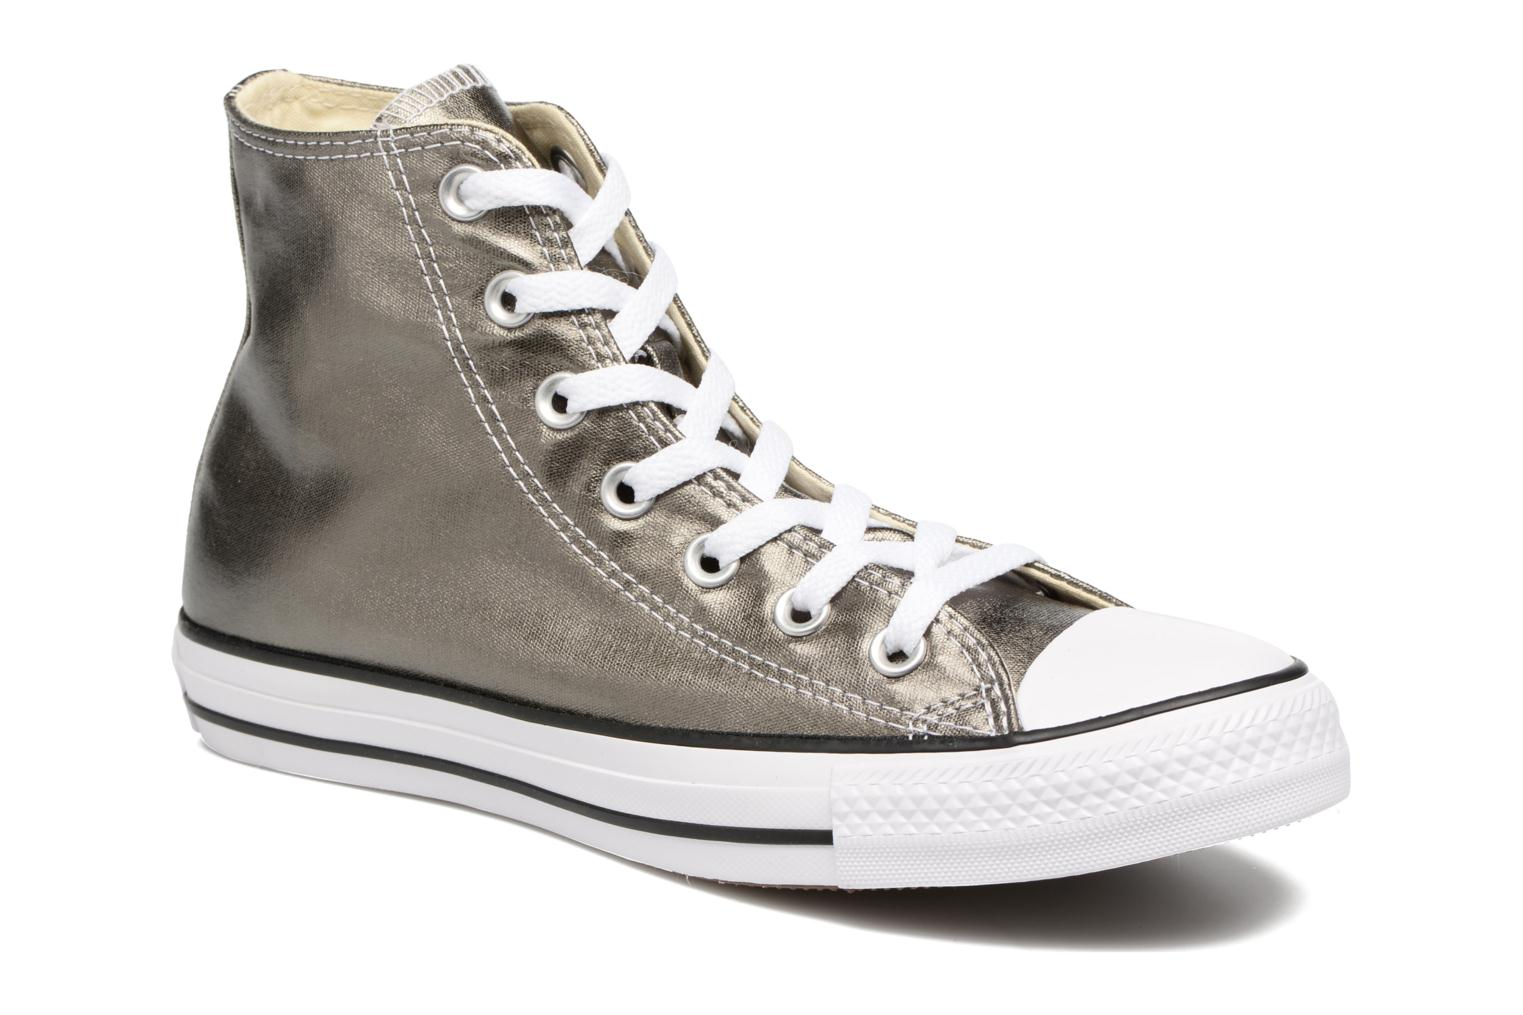 Chuck Taylor All Star Hi Metallics W Metallic Herbal/White/Black